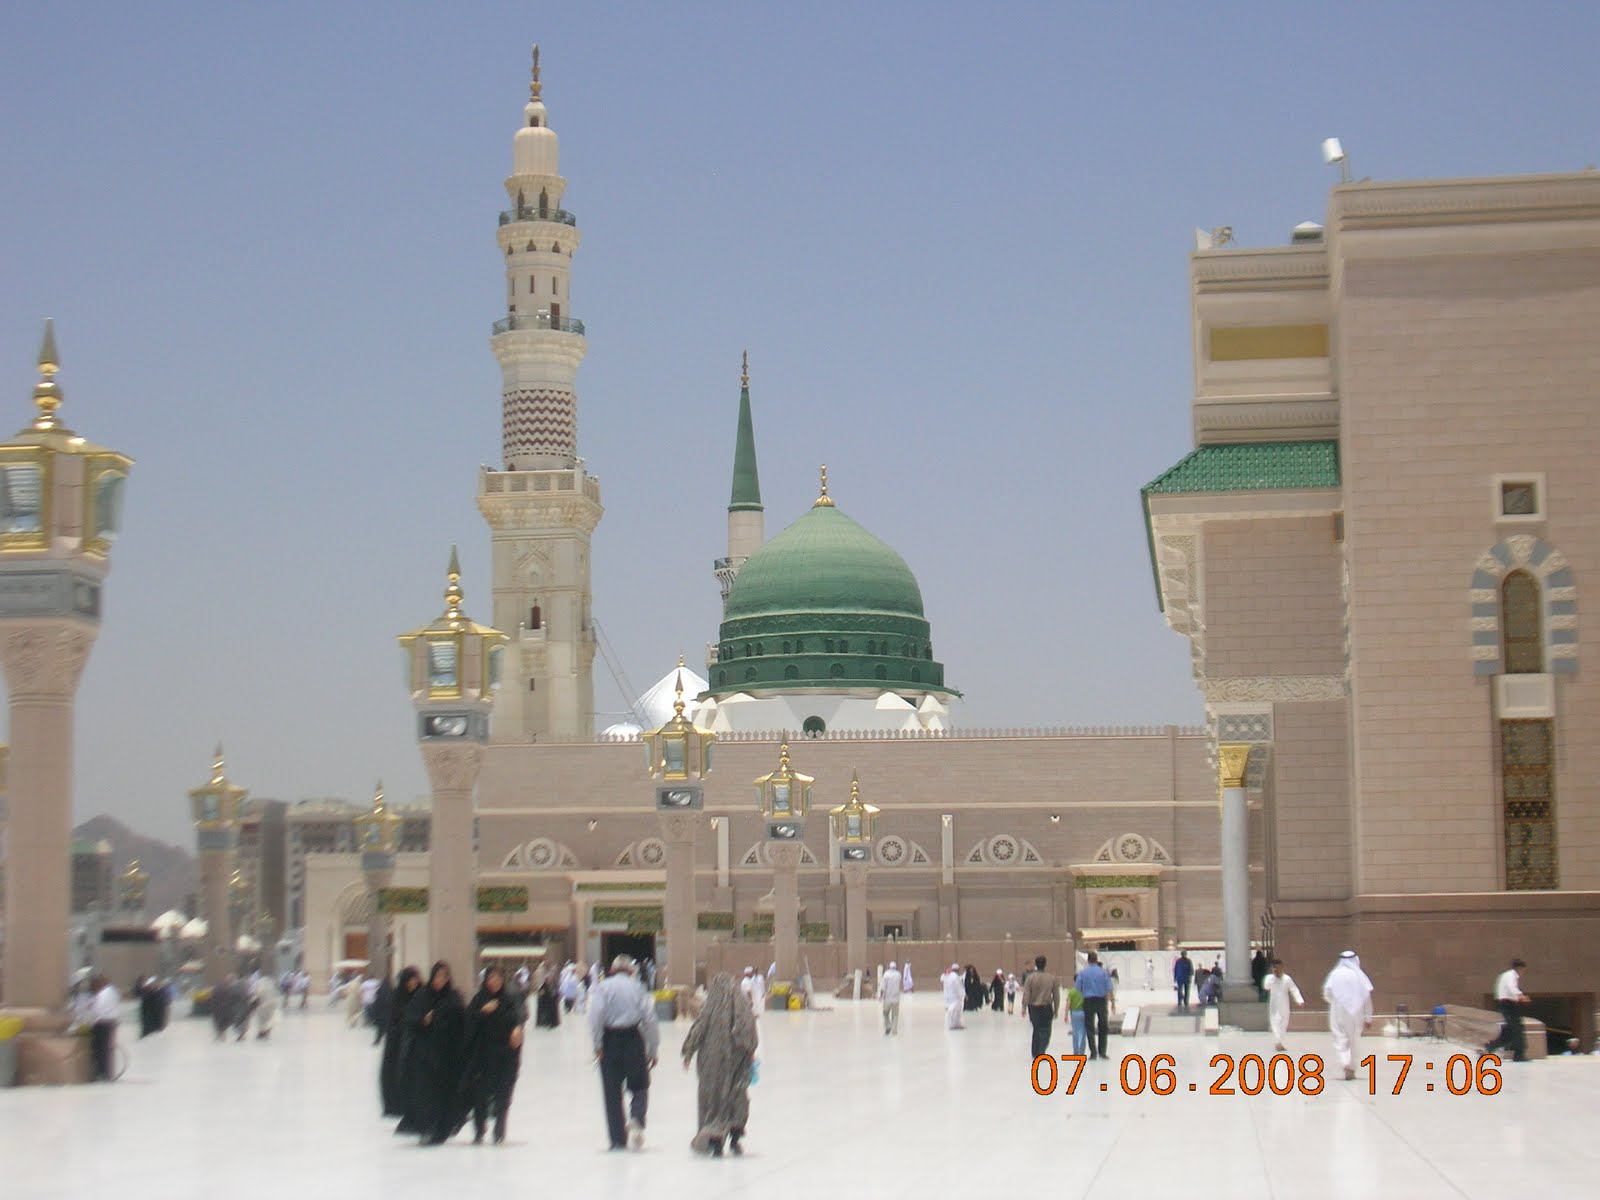 Masjid Nabawi